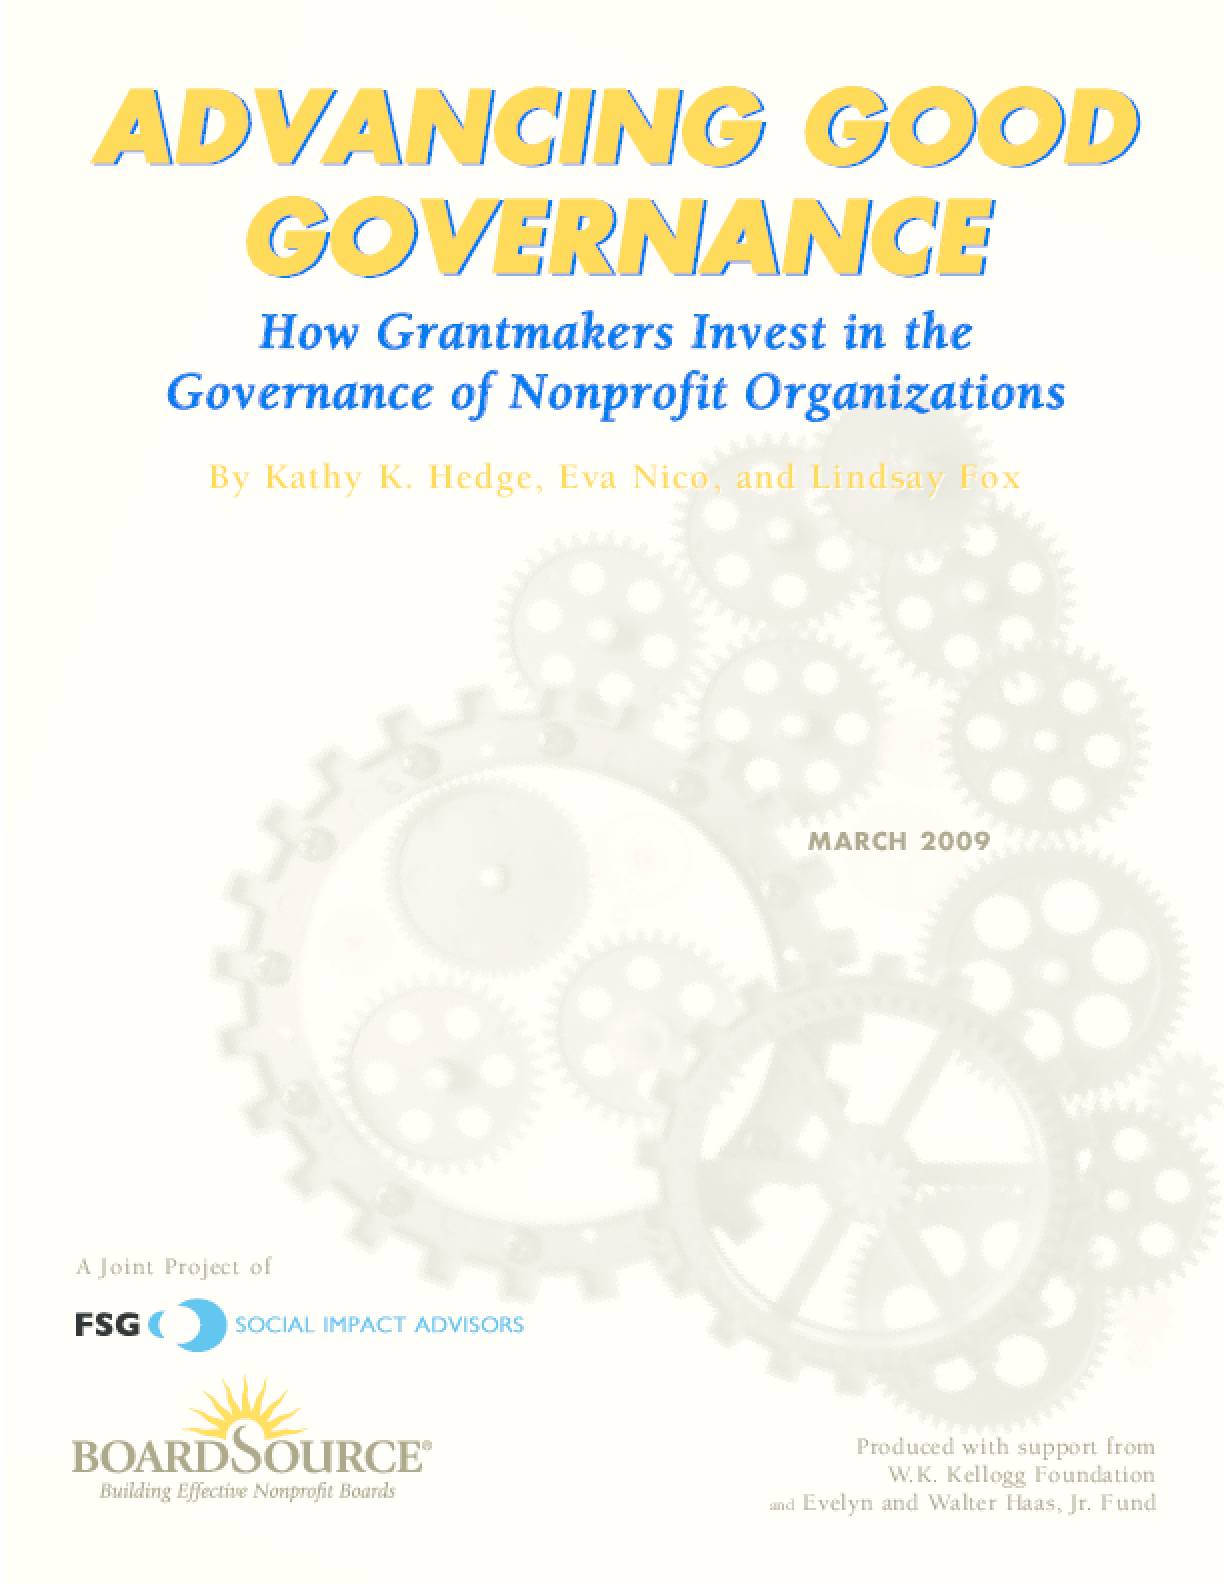 Advancing Good Governance: How Grantmakers Invest in the Governance of Nonprofit Organizations